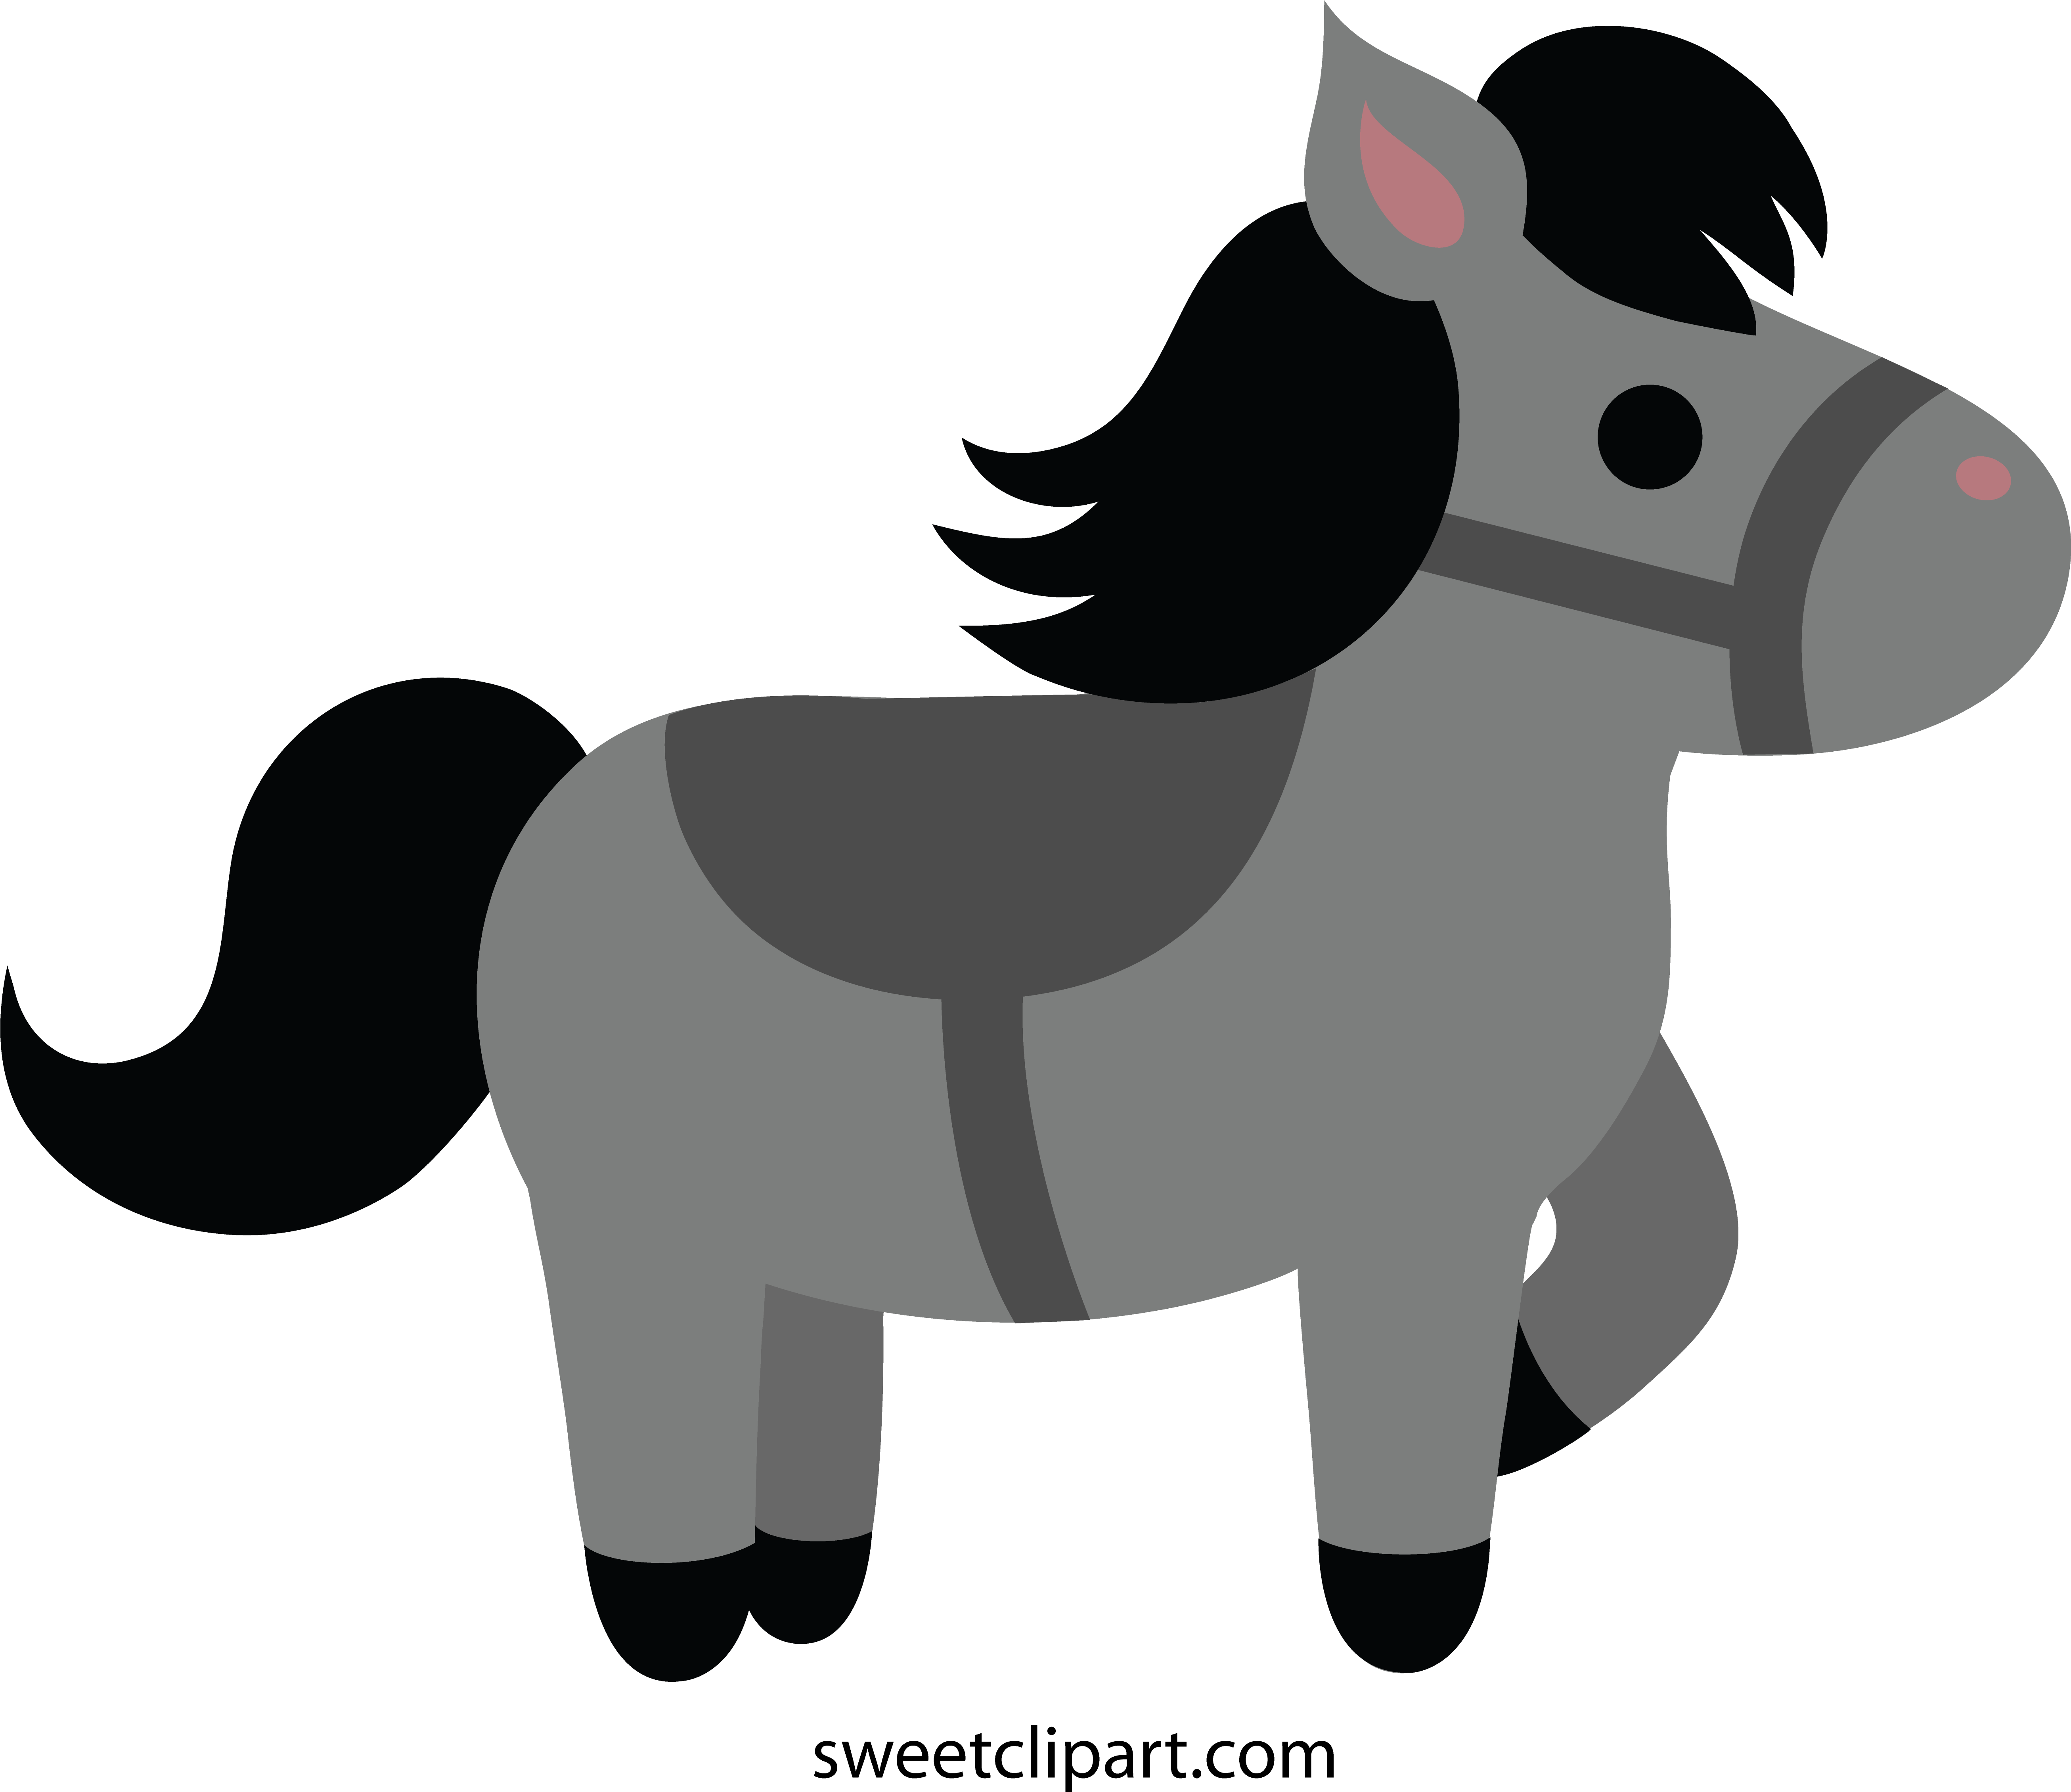 Download Horse Clipart Grey Cute Black Horse Clipart Full Size Png Image Pngkit